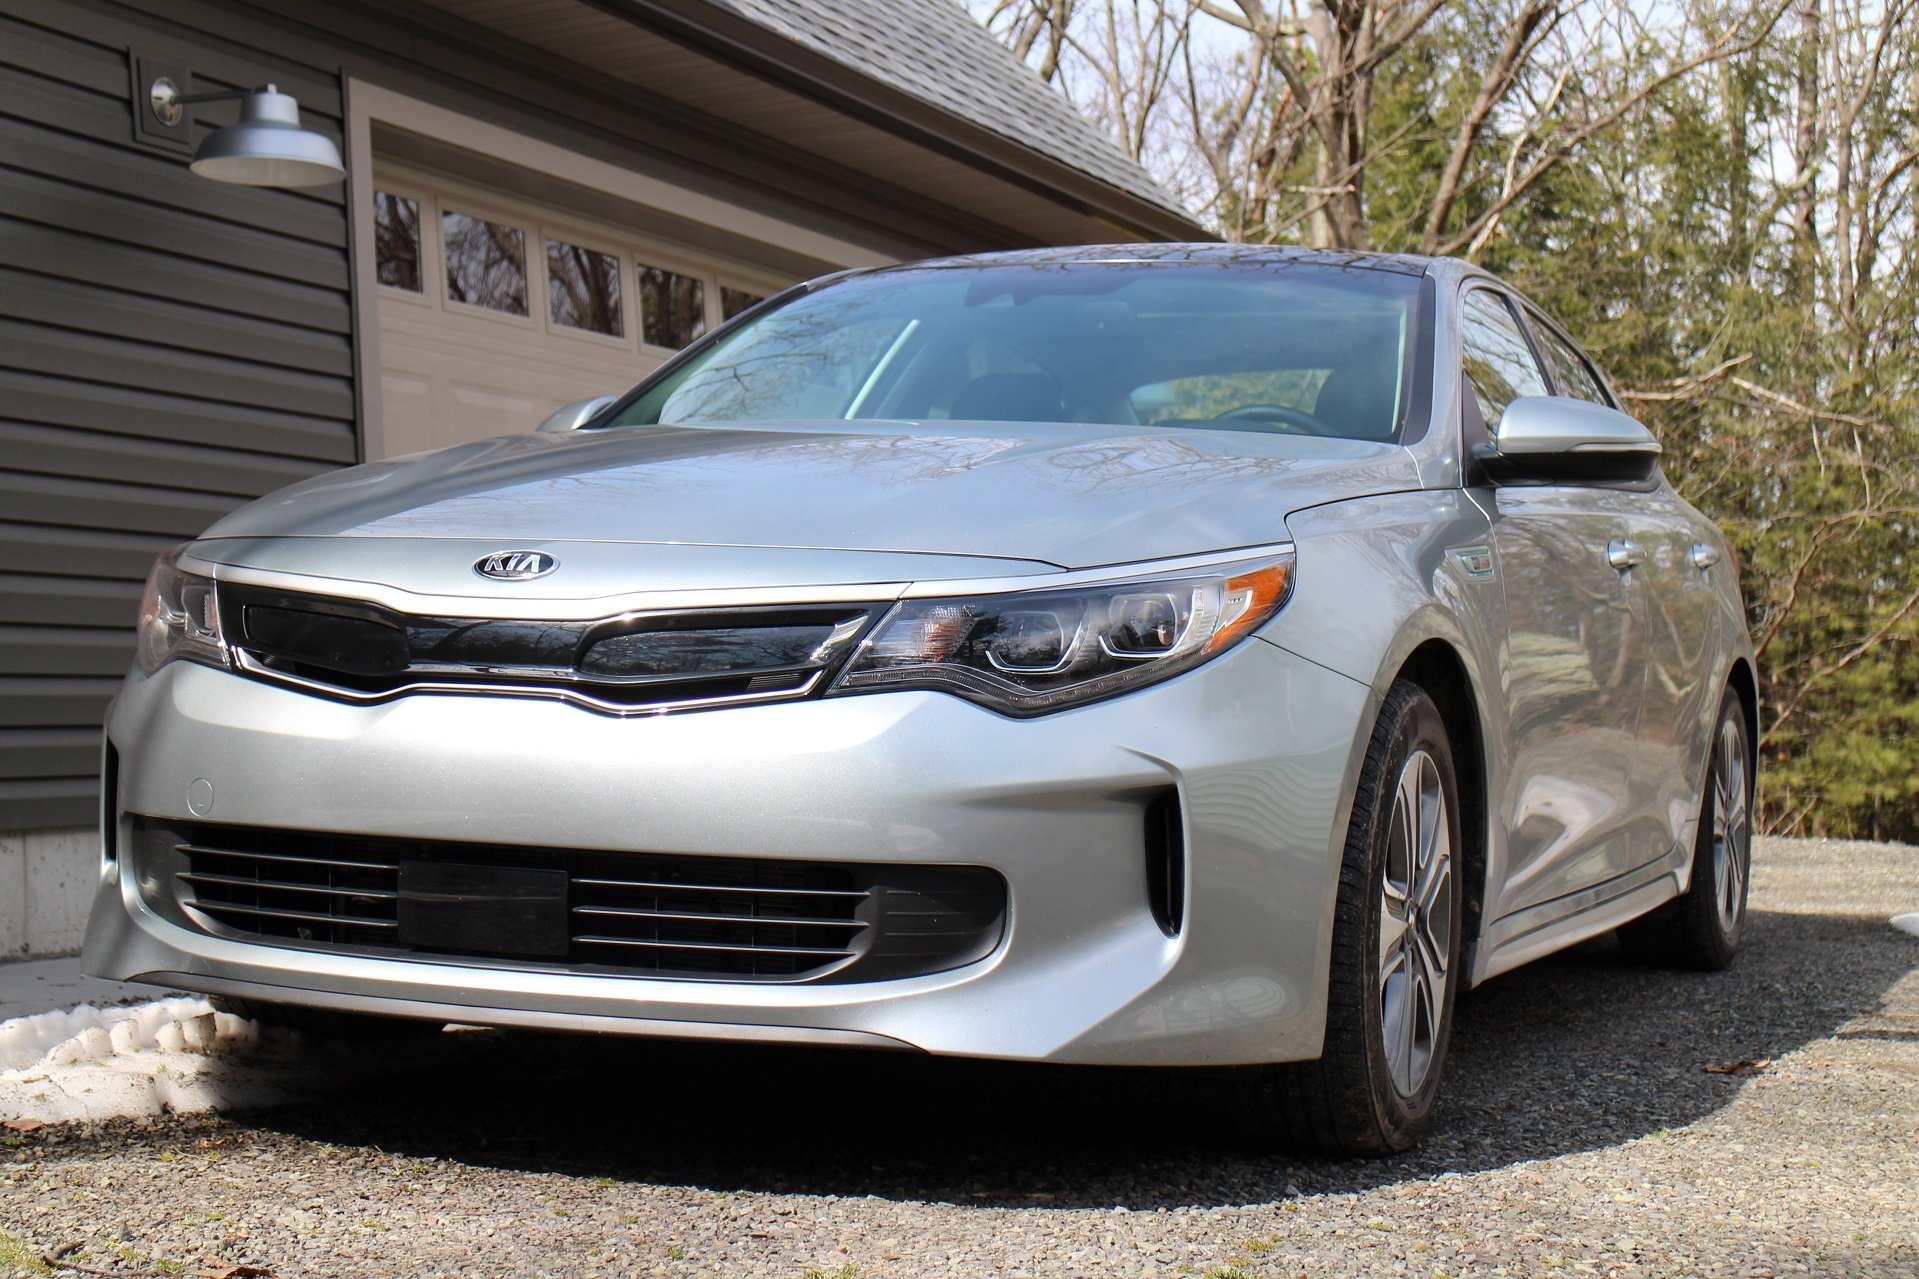 2017 kia optima hybrid gas mileage review of mid size sedan. Black Bedroom Furniture Sets. Home Design Ideas